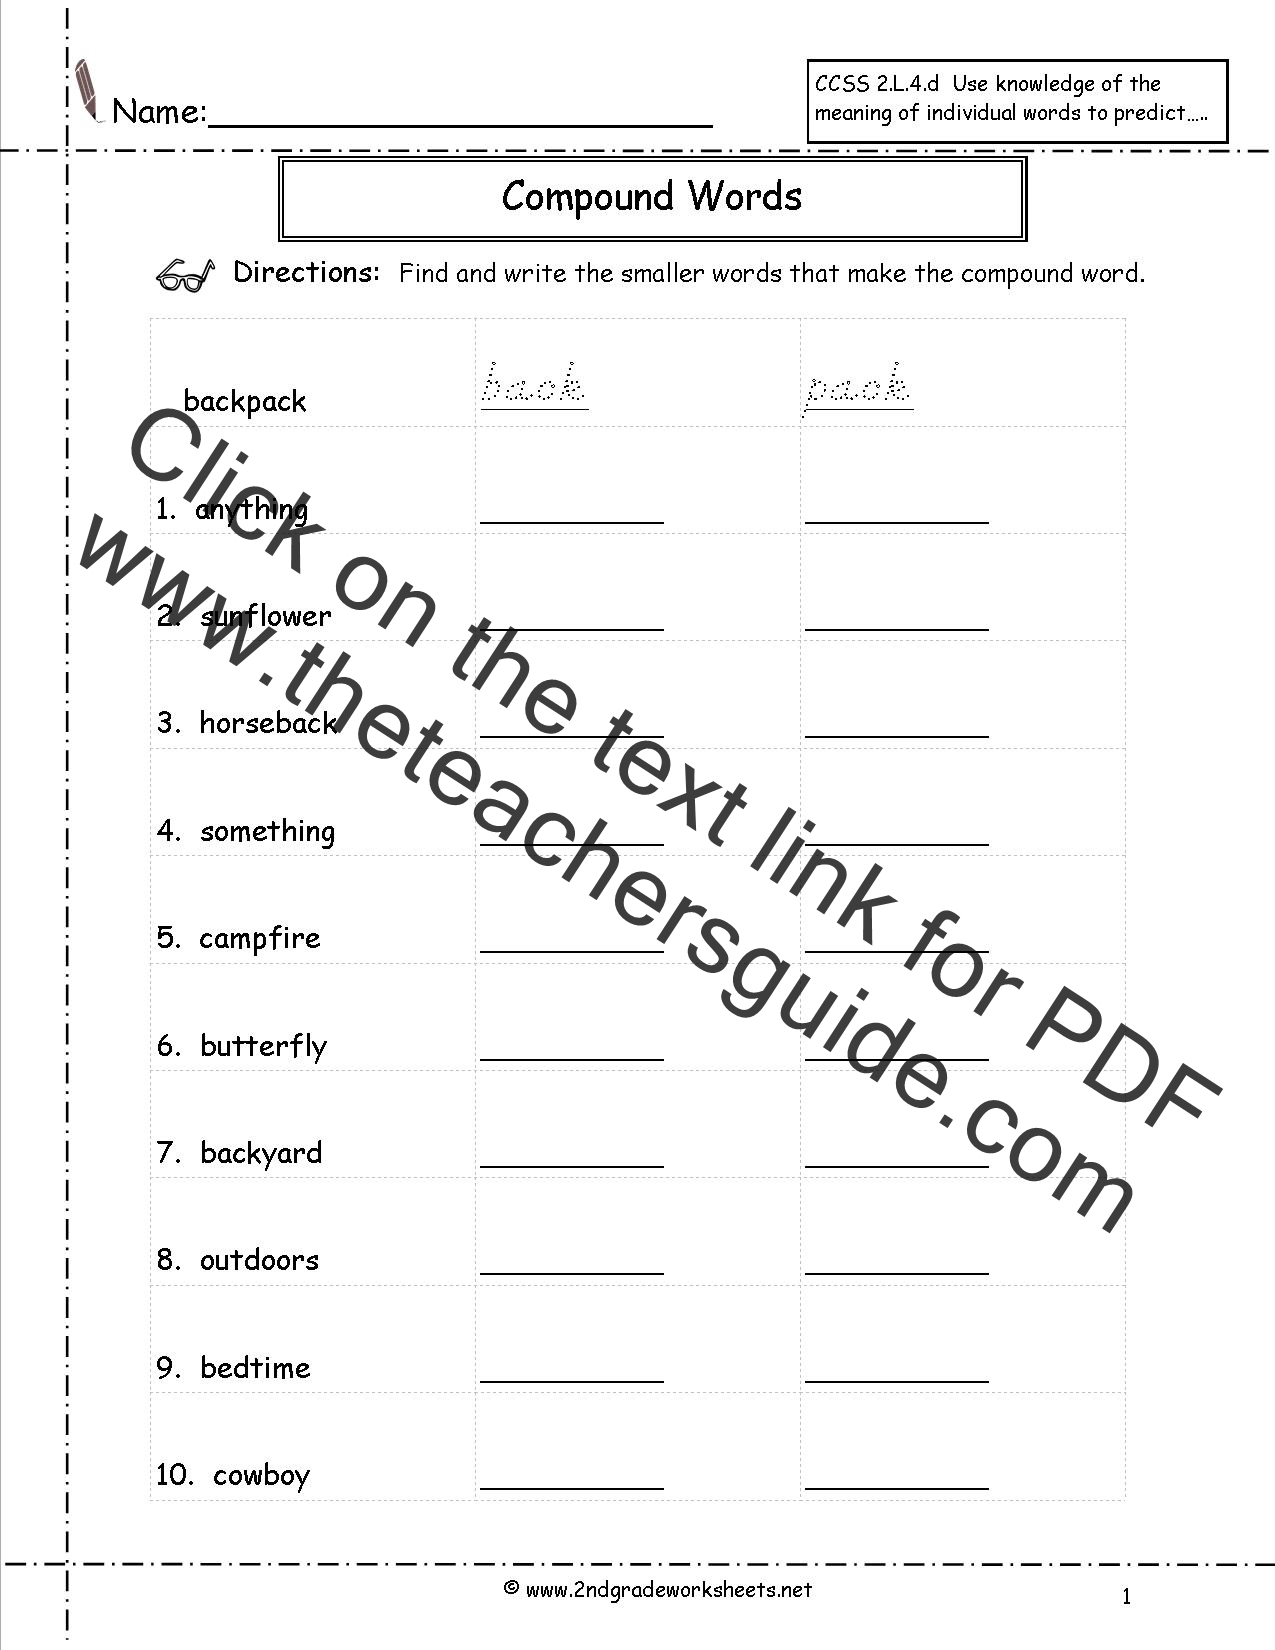 Worksheets Printable Worksheets For 2nd Grade compound words worksheets worksheet